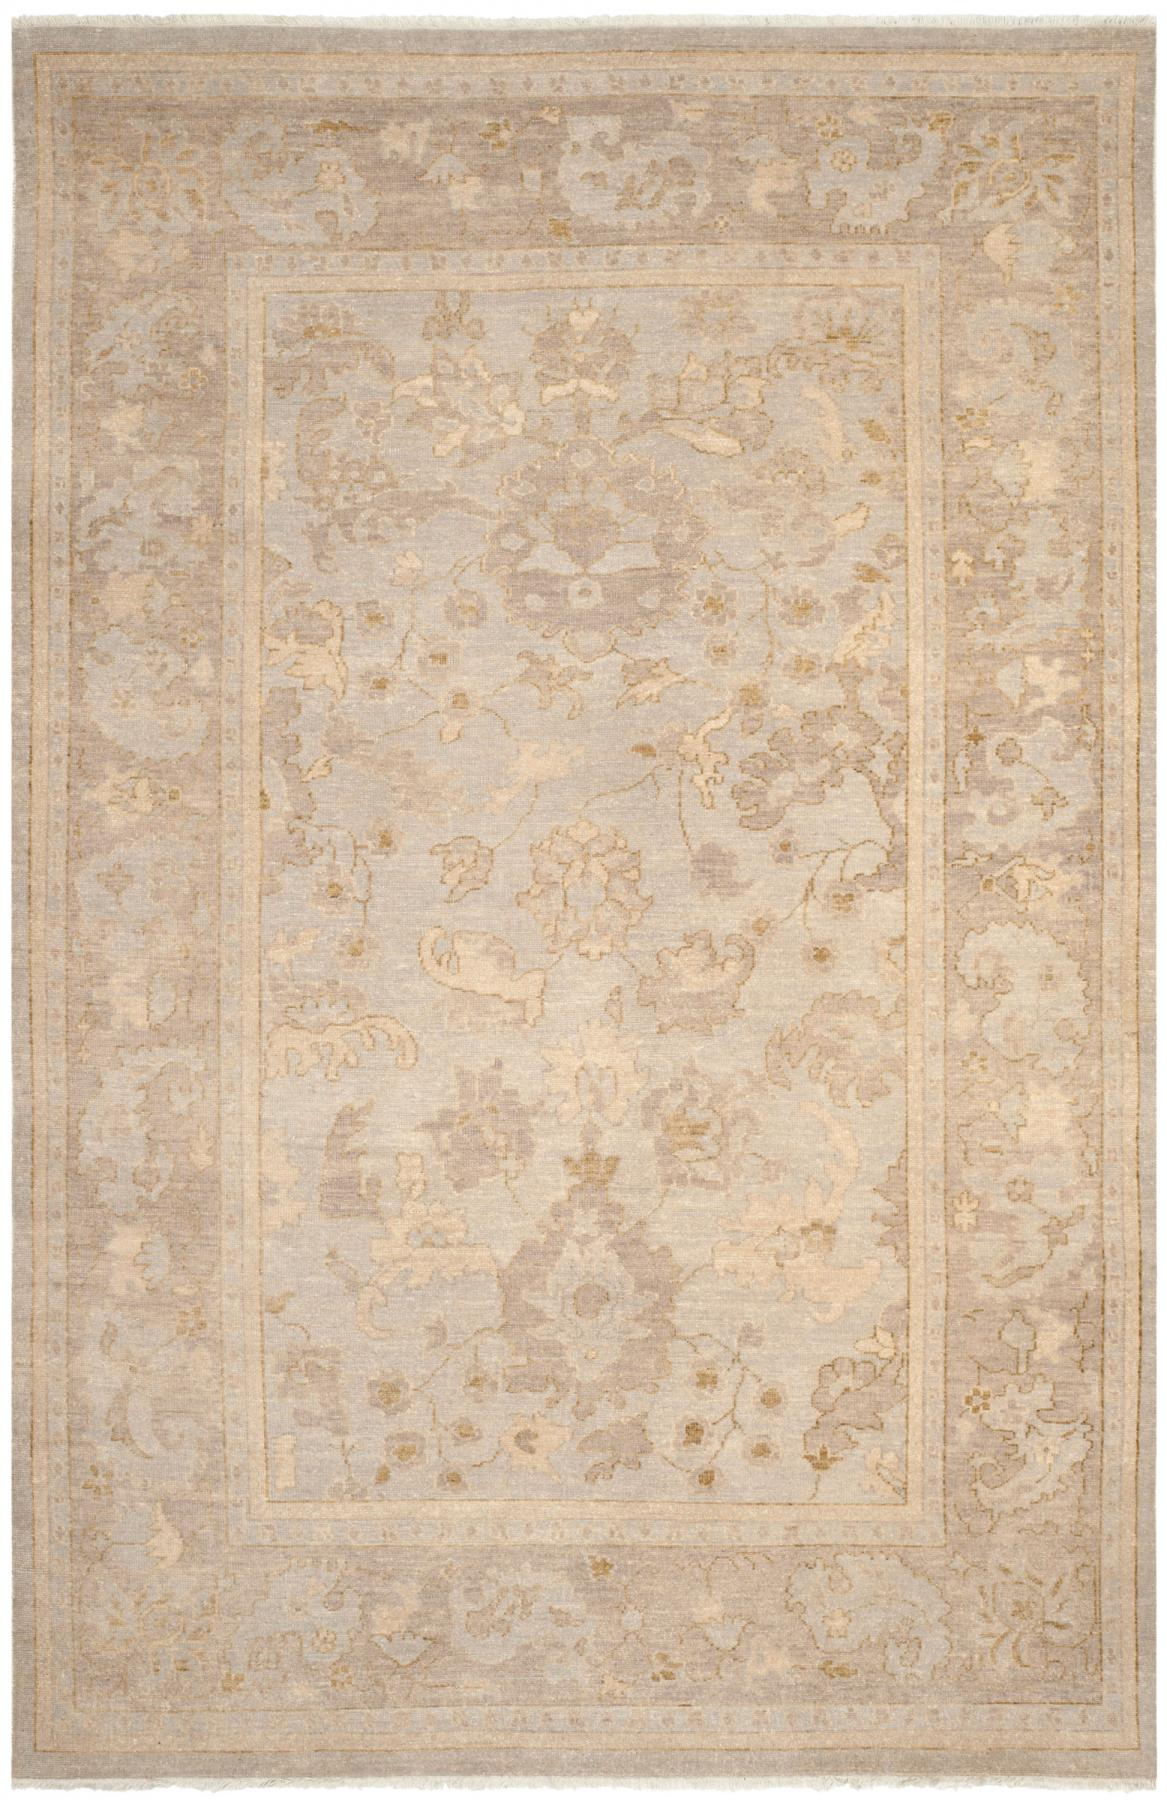 Excellent oushak rugs for floorings and rugs ideas with antique oushak rugs